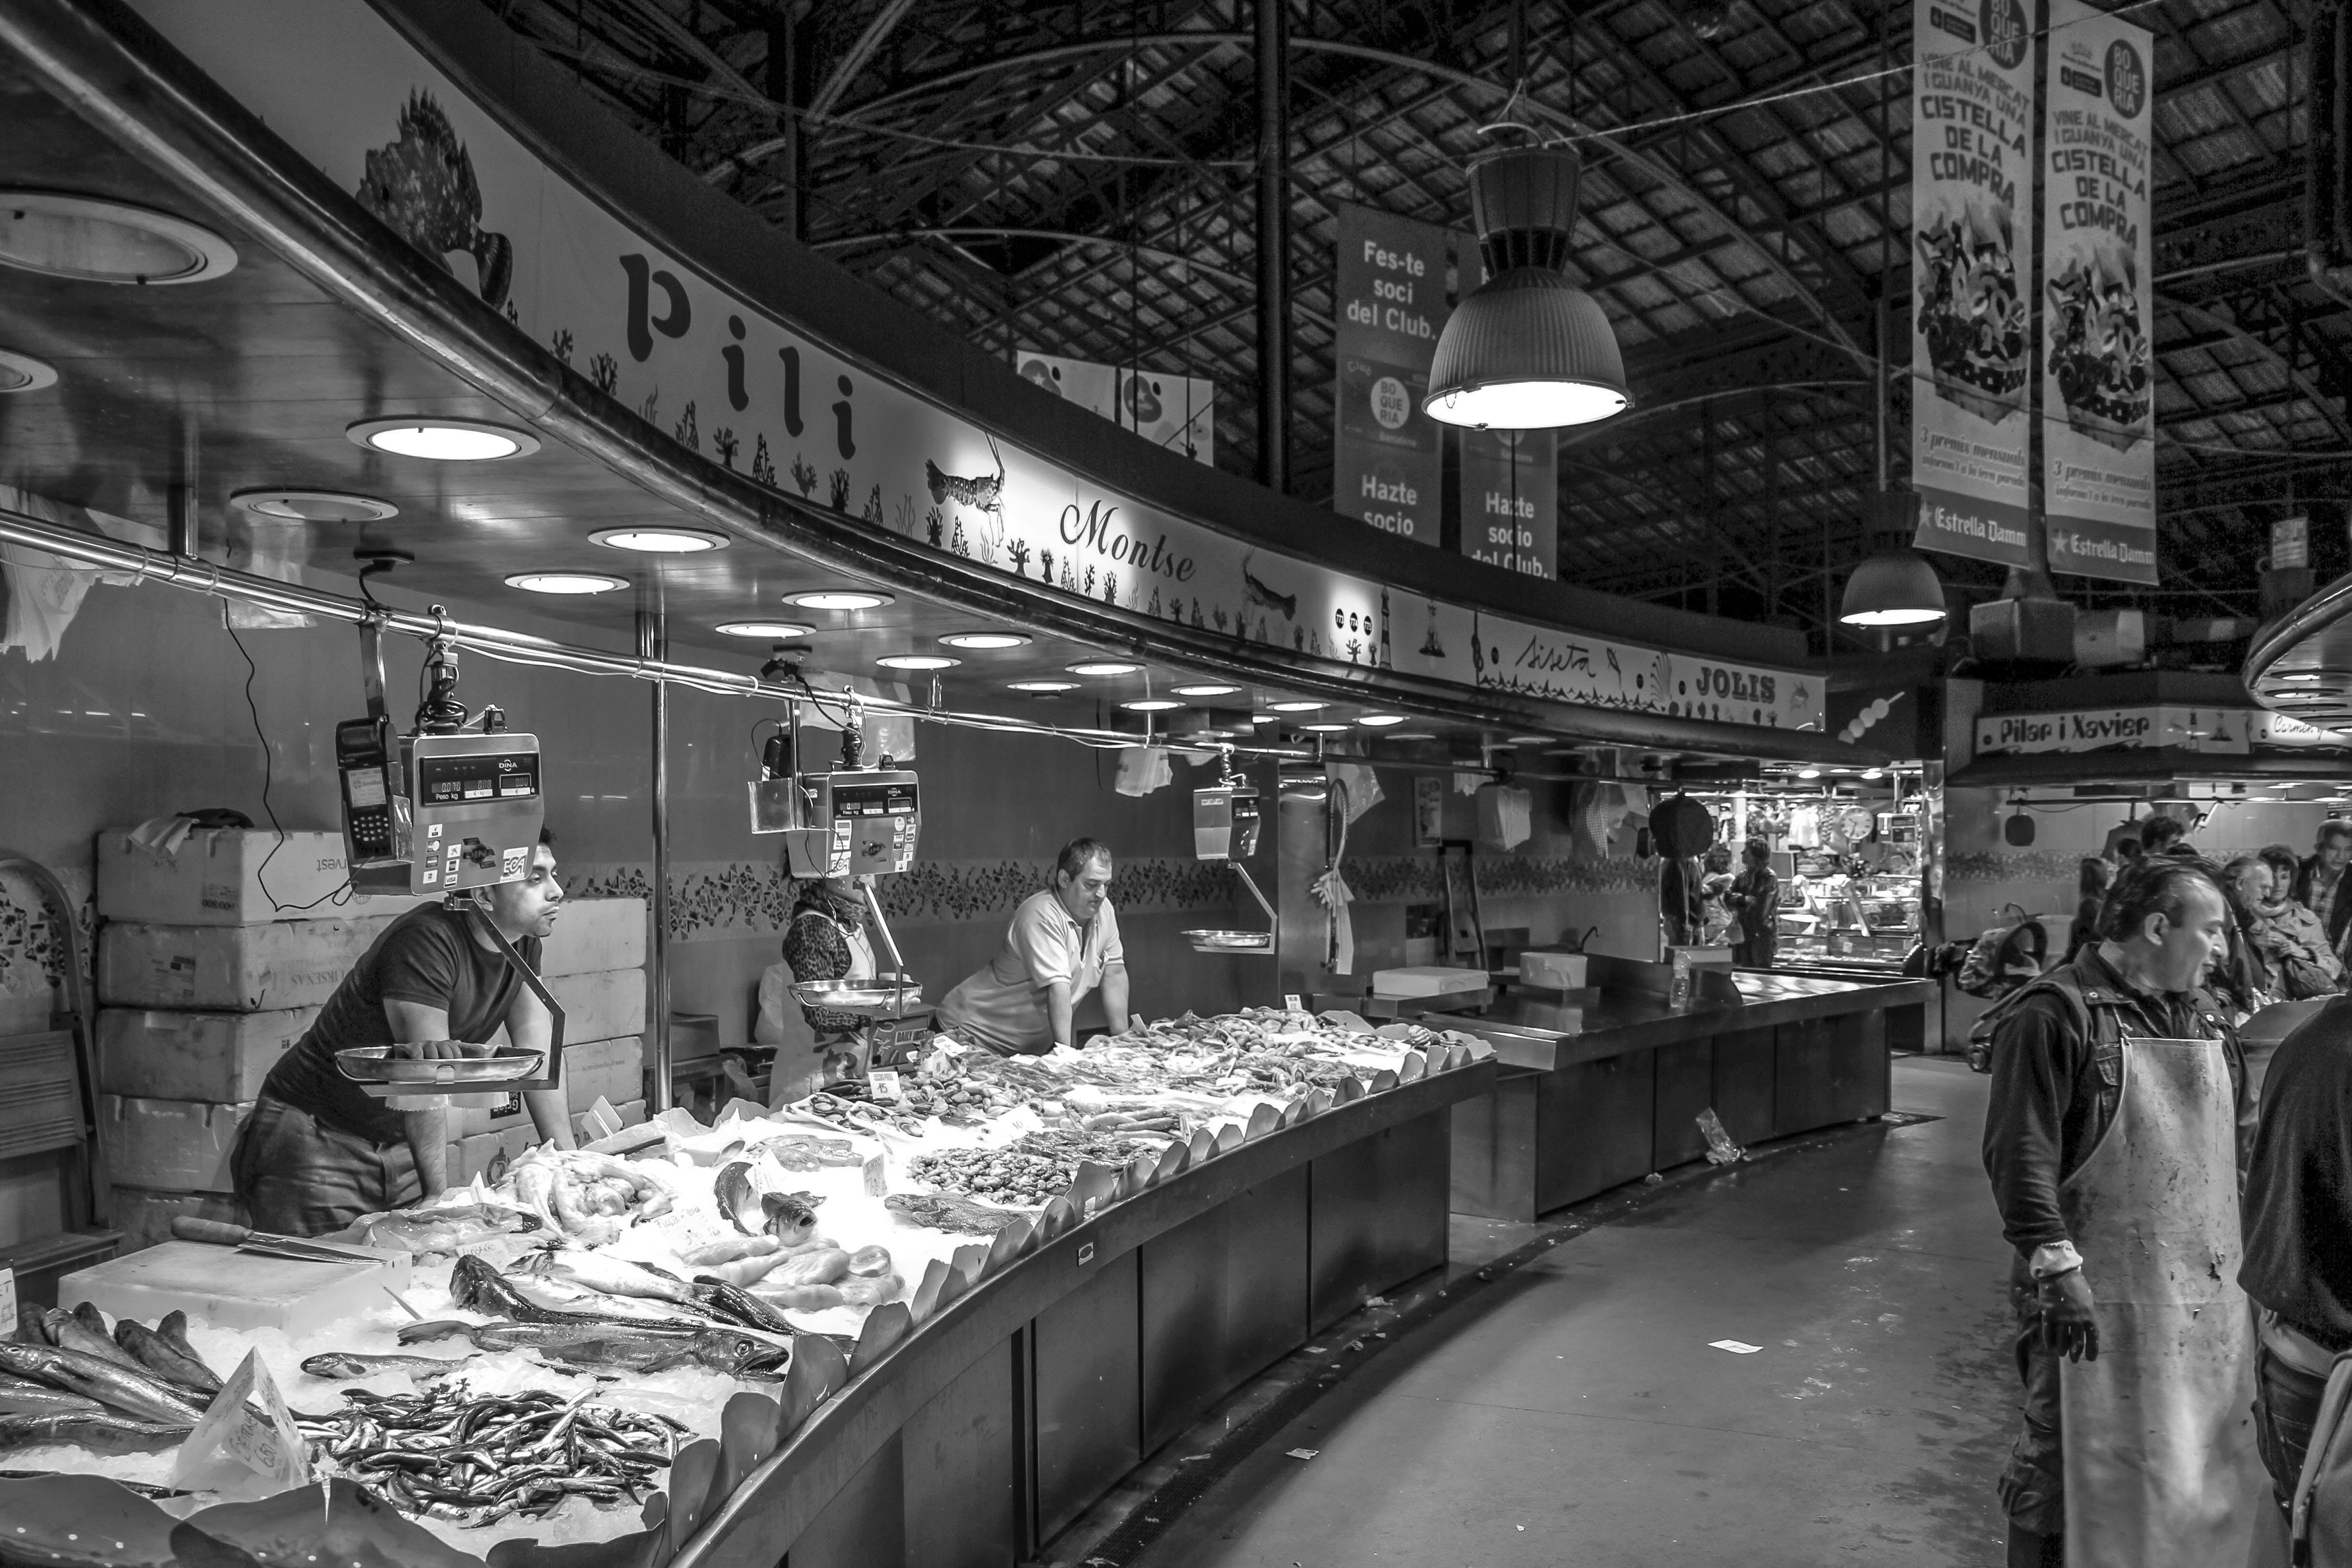 Gray Scale Photo of a People in Market